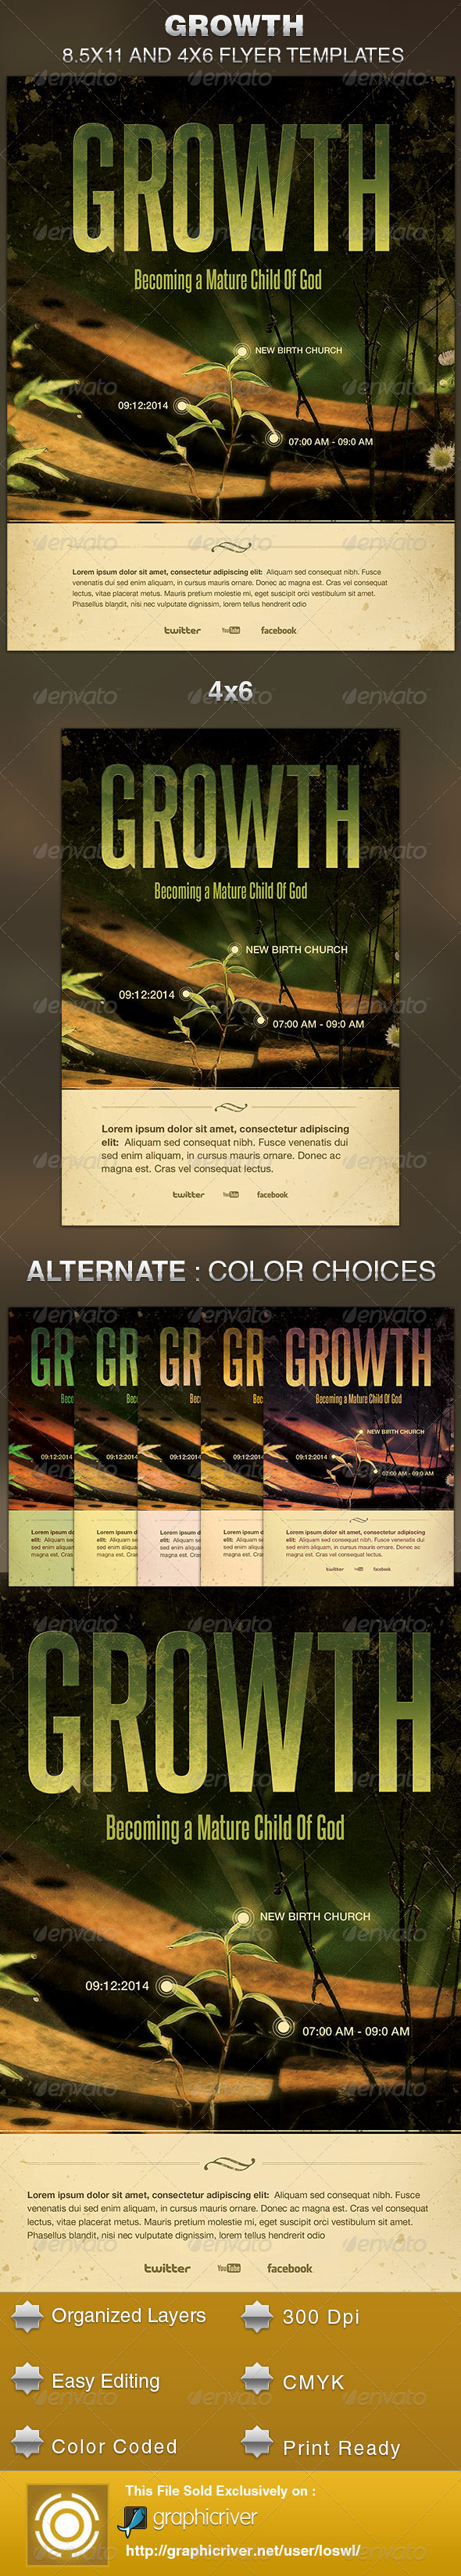 GraphicRiver Growth Church Flyer Template 5590968